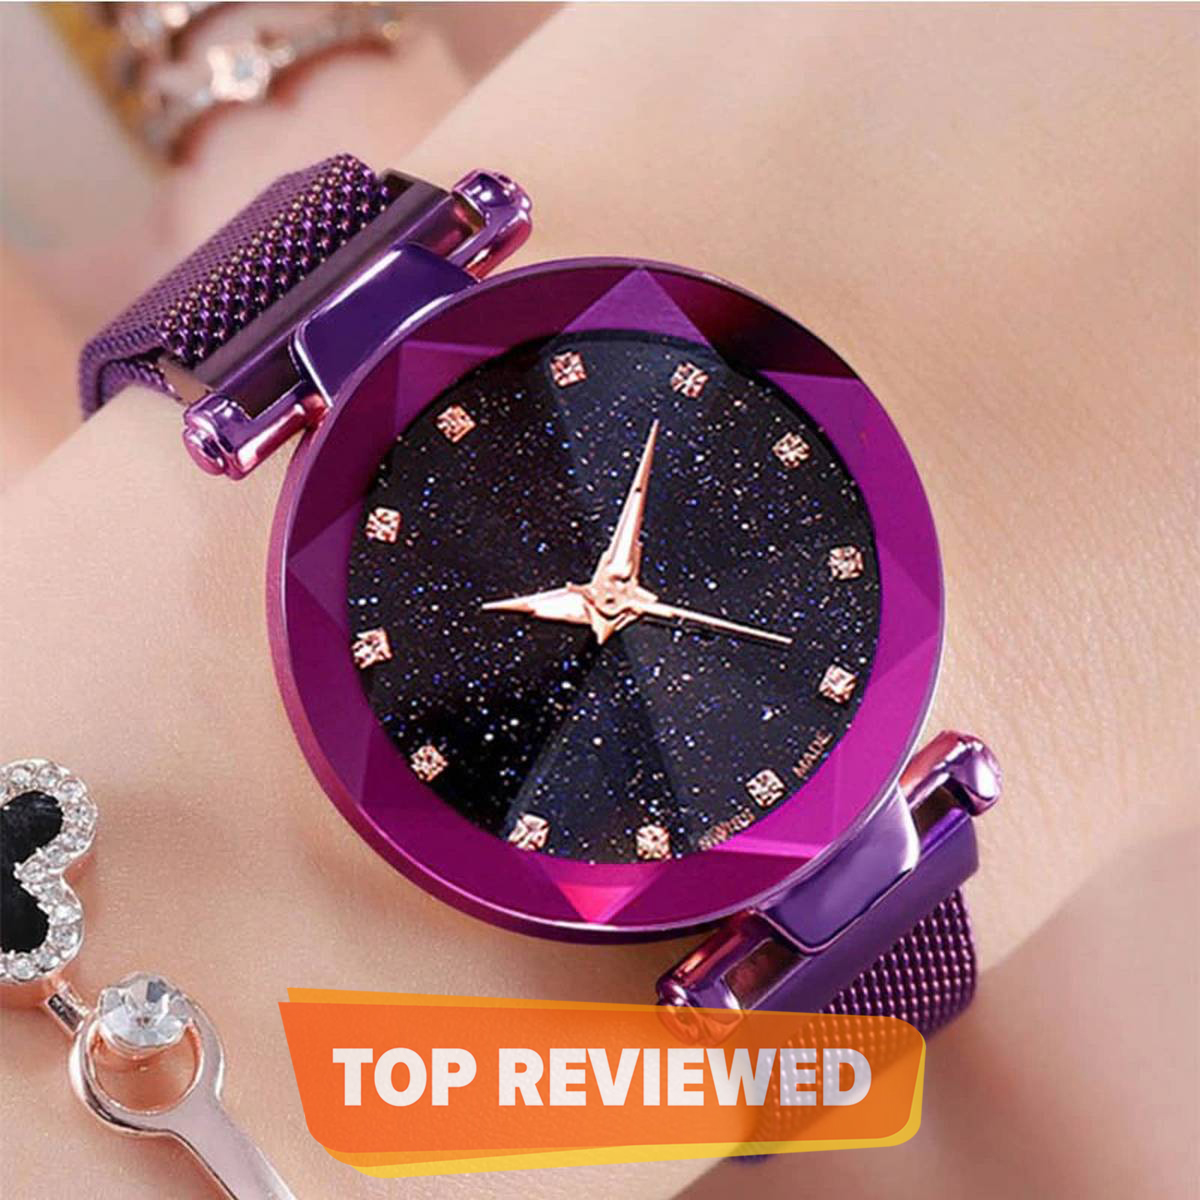 Women Mesh Magnet Buckle Starry Sky Luxury Fashion Watch - 2020 Model, Magnetic Strap, College/Office Girls / Gifts